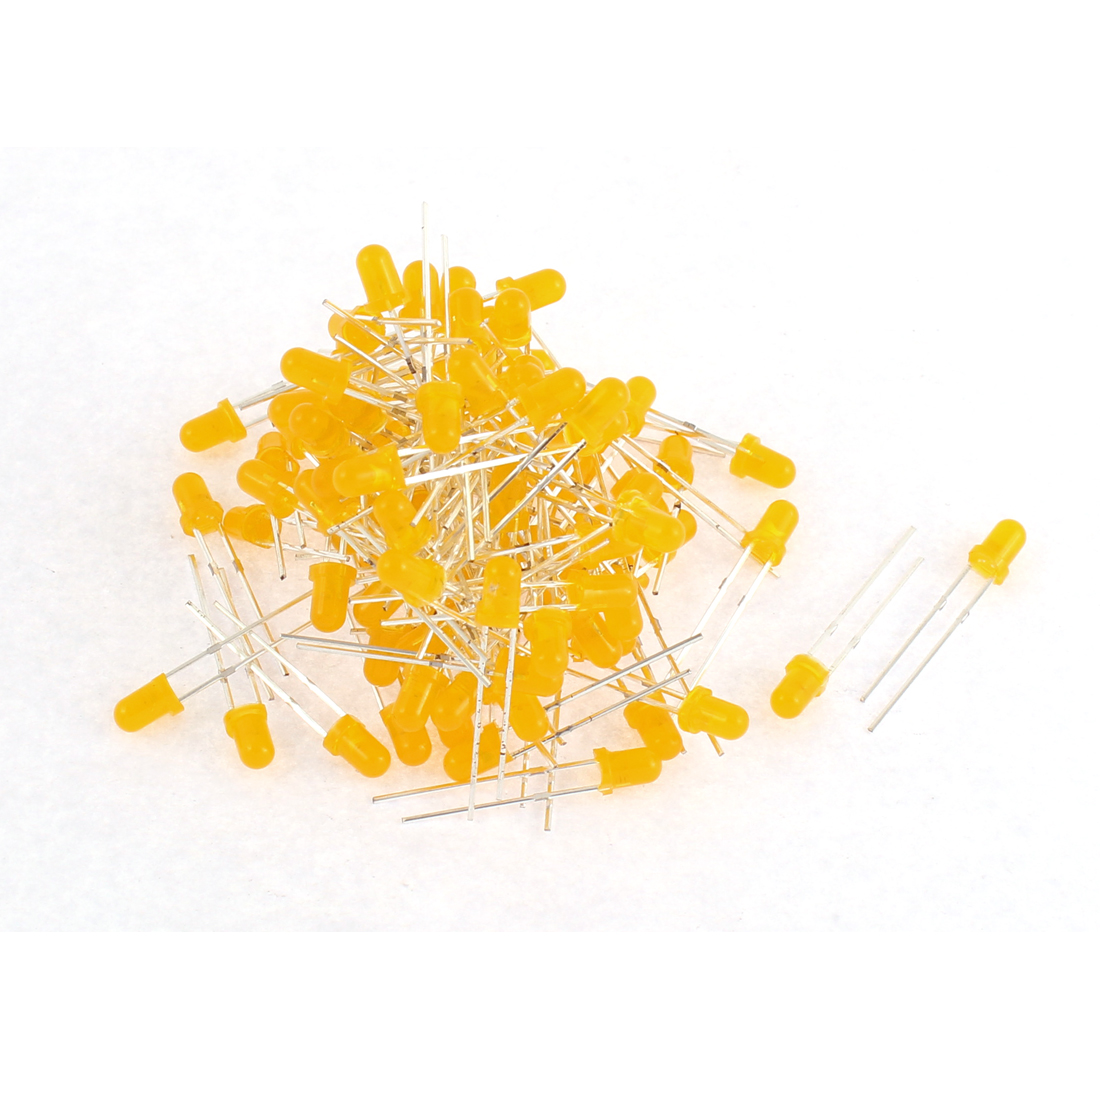 100pcs 3mm Yellow Color Diffused LED Light Emitting Diode Lamp Bulbs